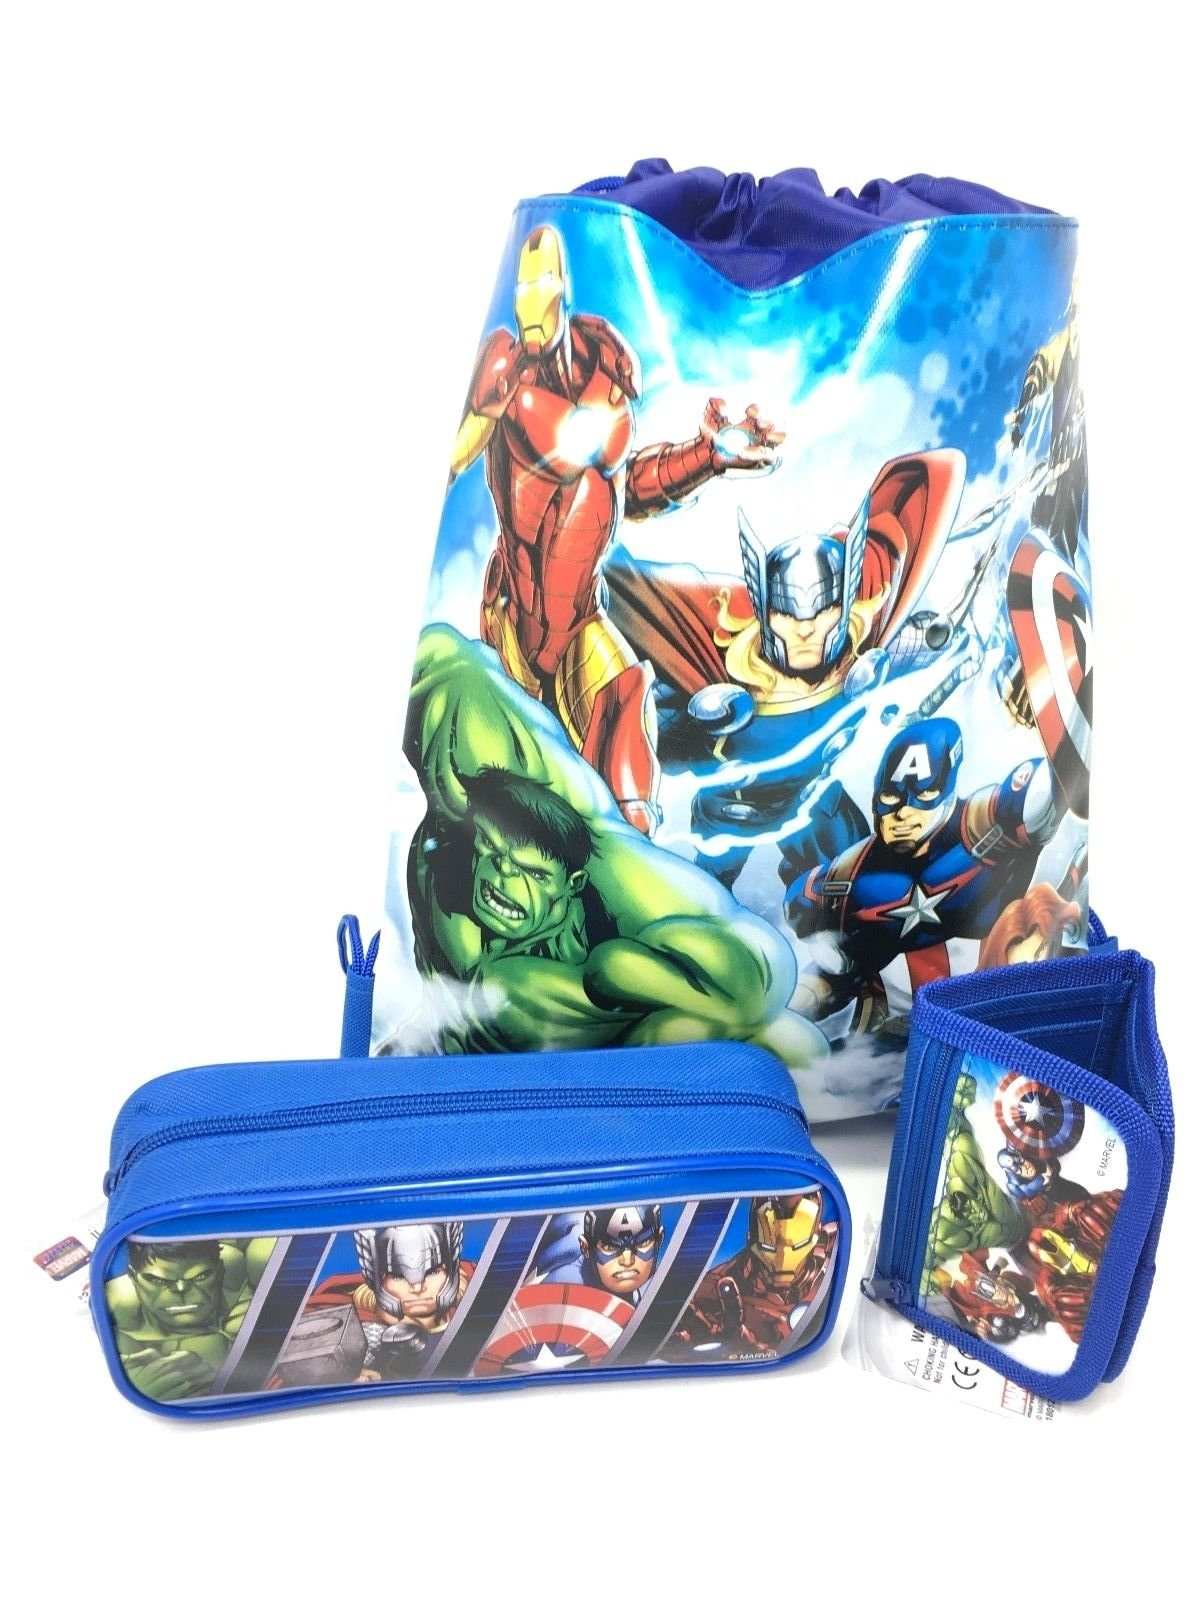 Marvel Avengers Character Authentic Licensed Wallet, Pencil Case, Sling Backpack Bag-3 Items-Blue